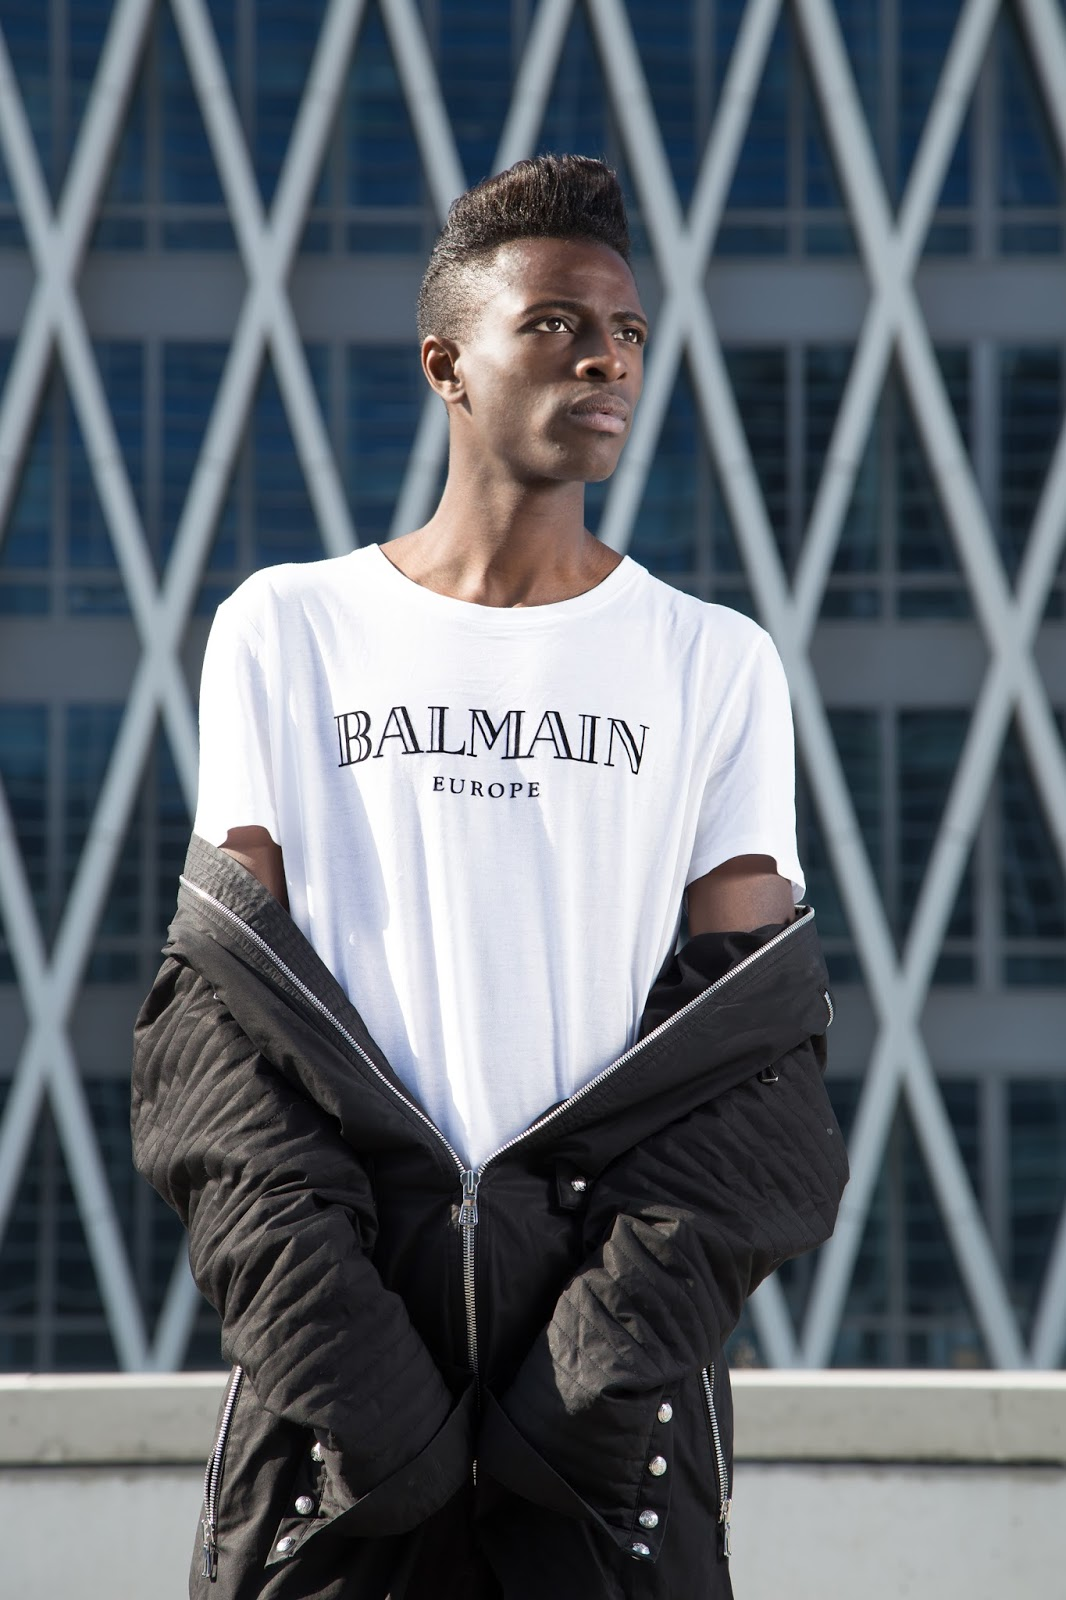 Introducing you Balmain x H&M men's collection + street style guide for Balmain x H&M men's collection written by jonthegold / photography by HOYmedia ( antwerp ) . Wearing balmain europe white tshirt and black jumpsuit menswear